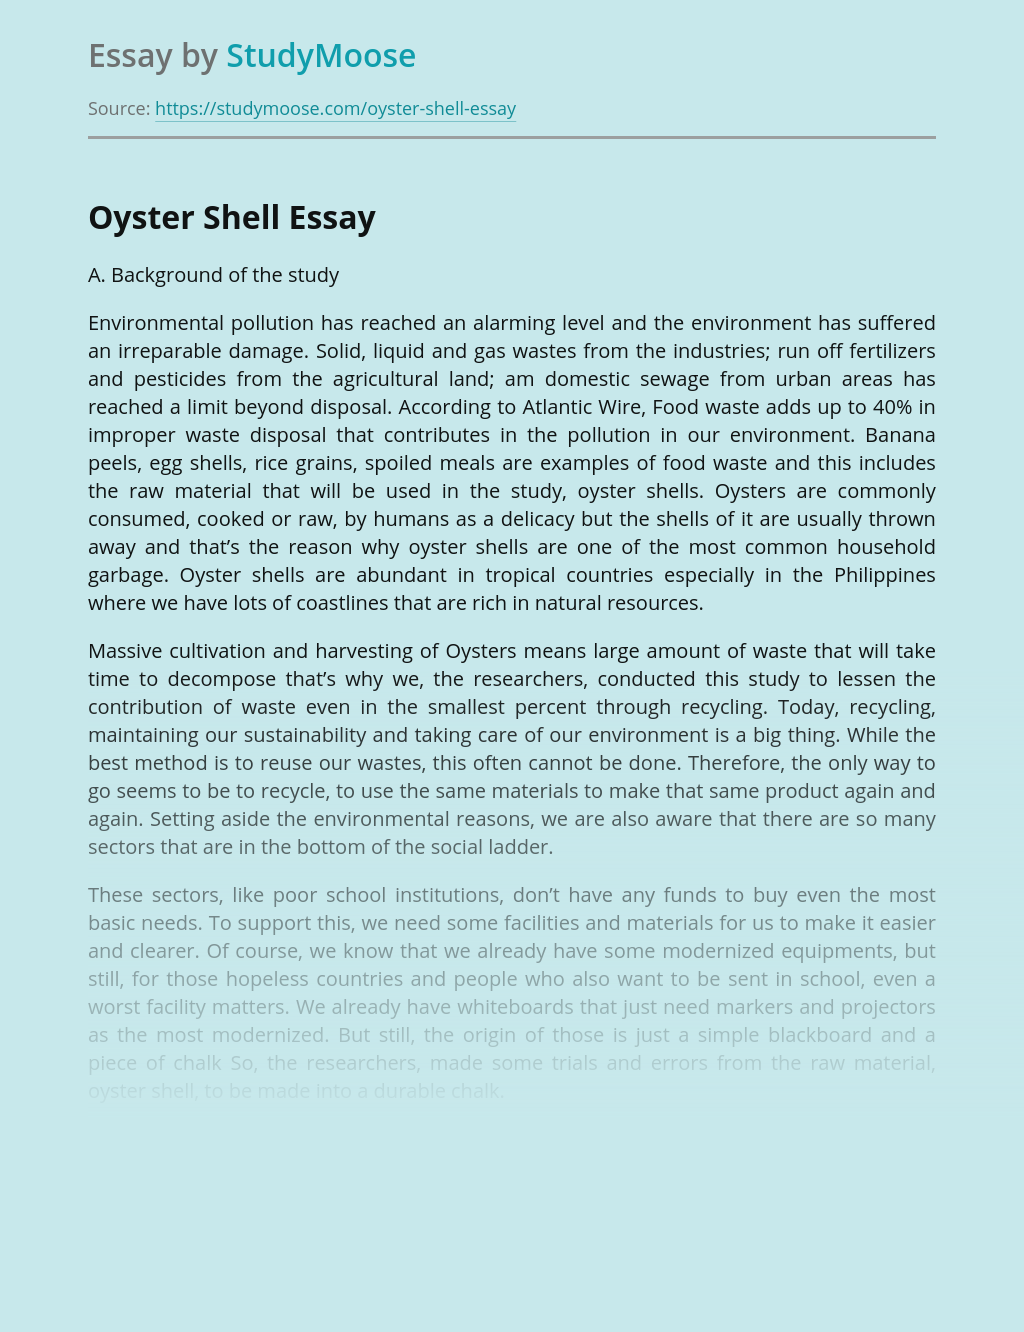 Hazards Of Environmental Pollution by Oyster Shell